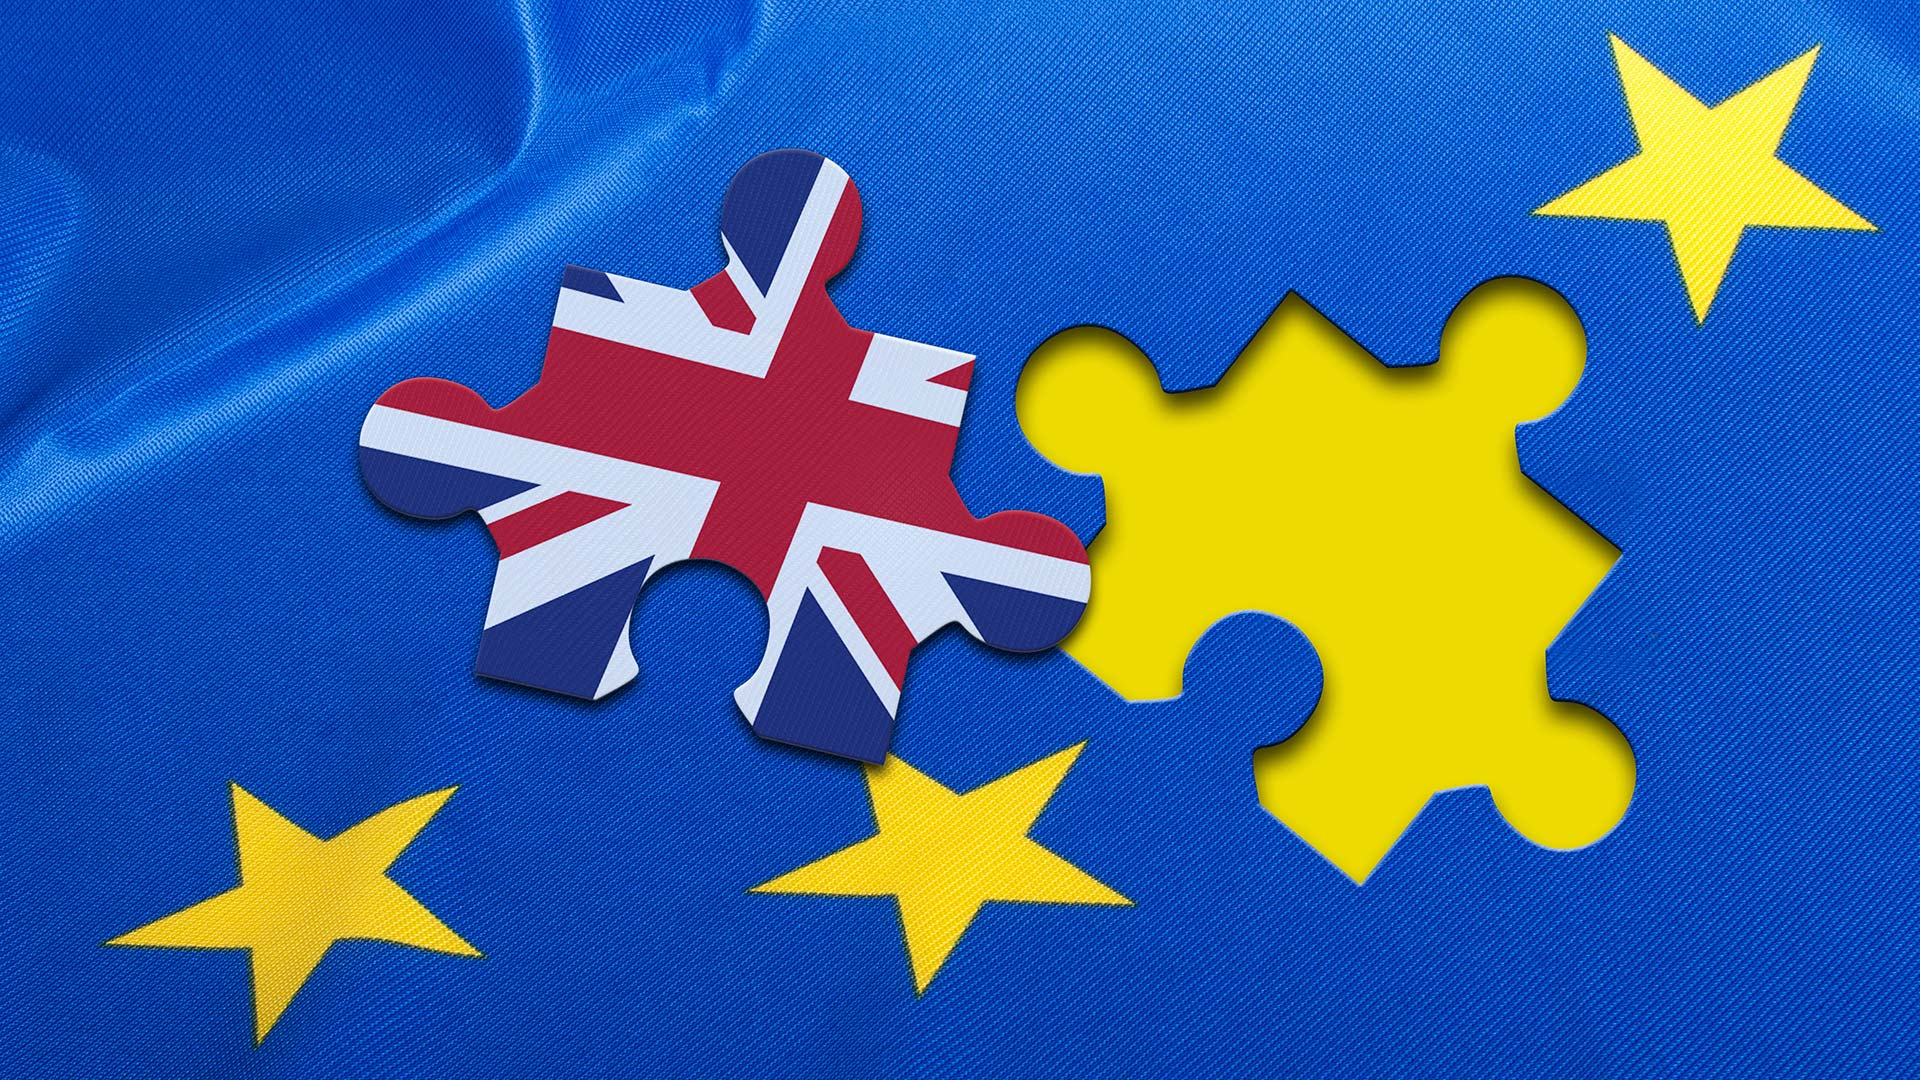 UK flag puzzle piece